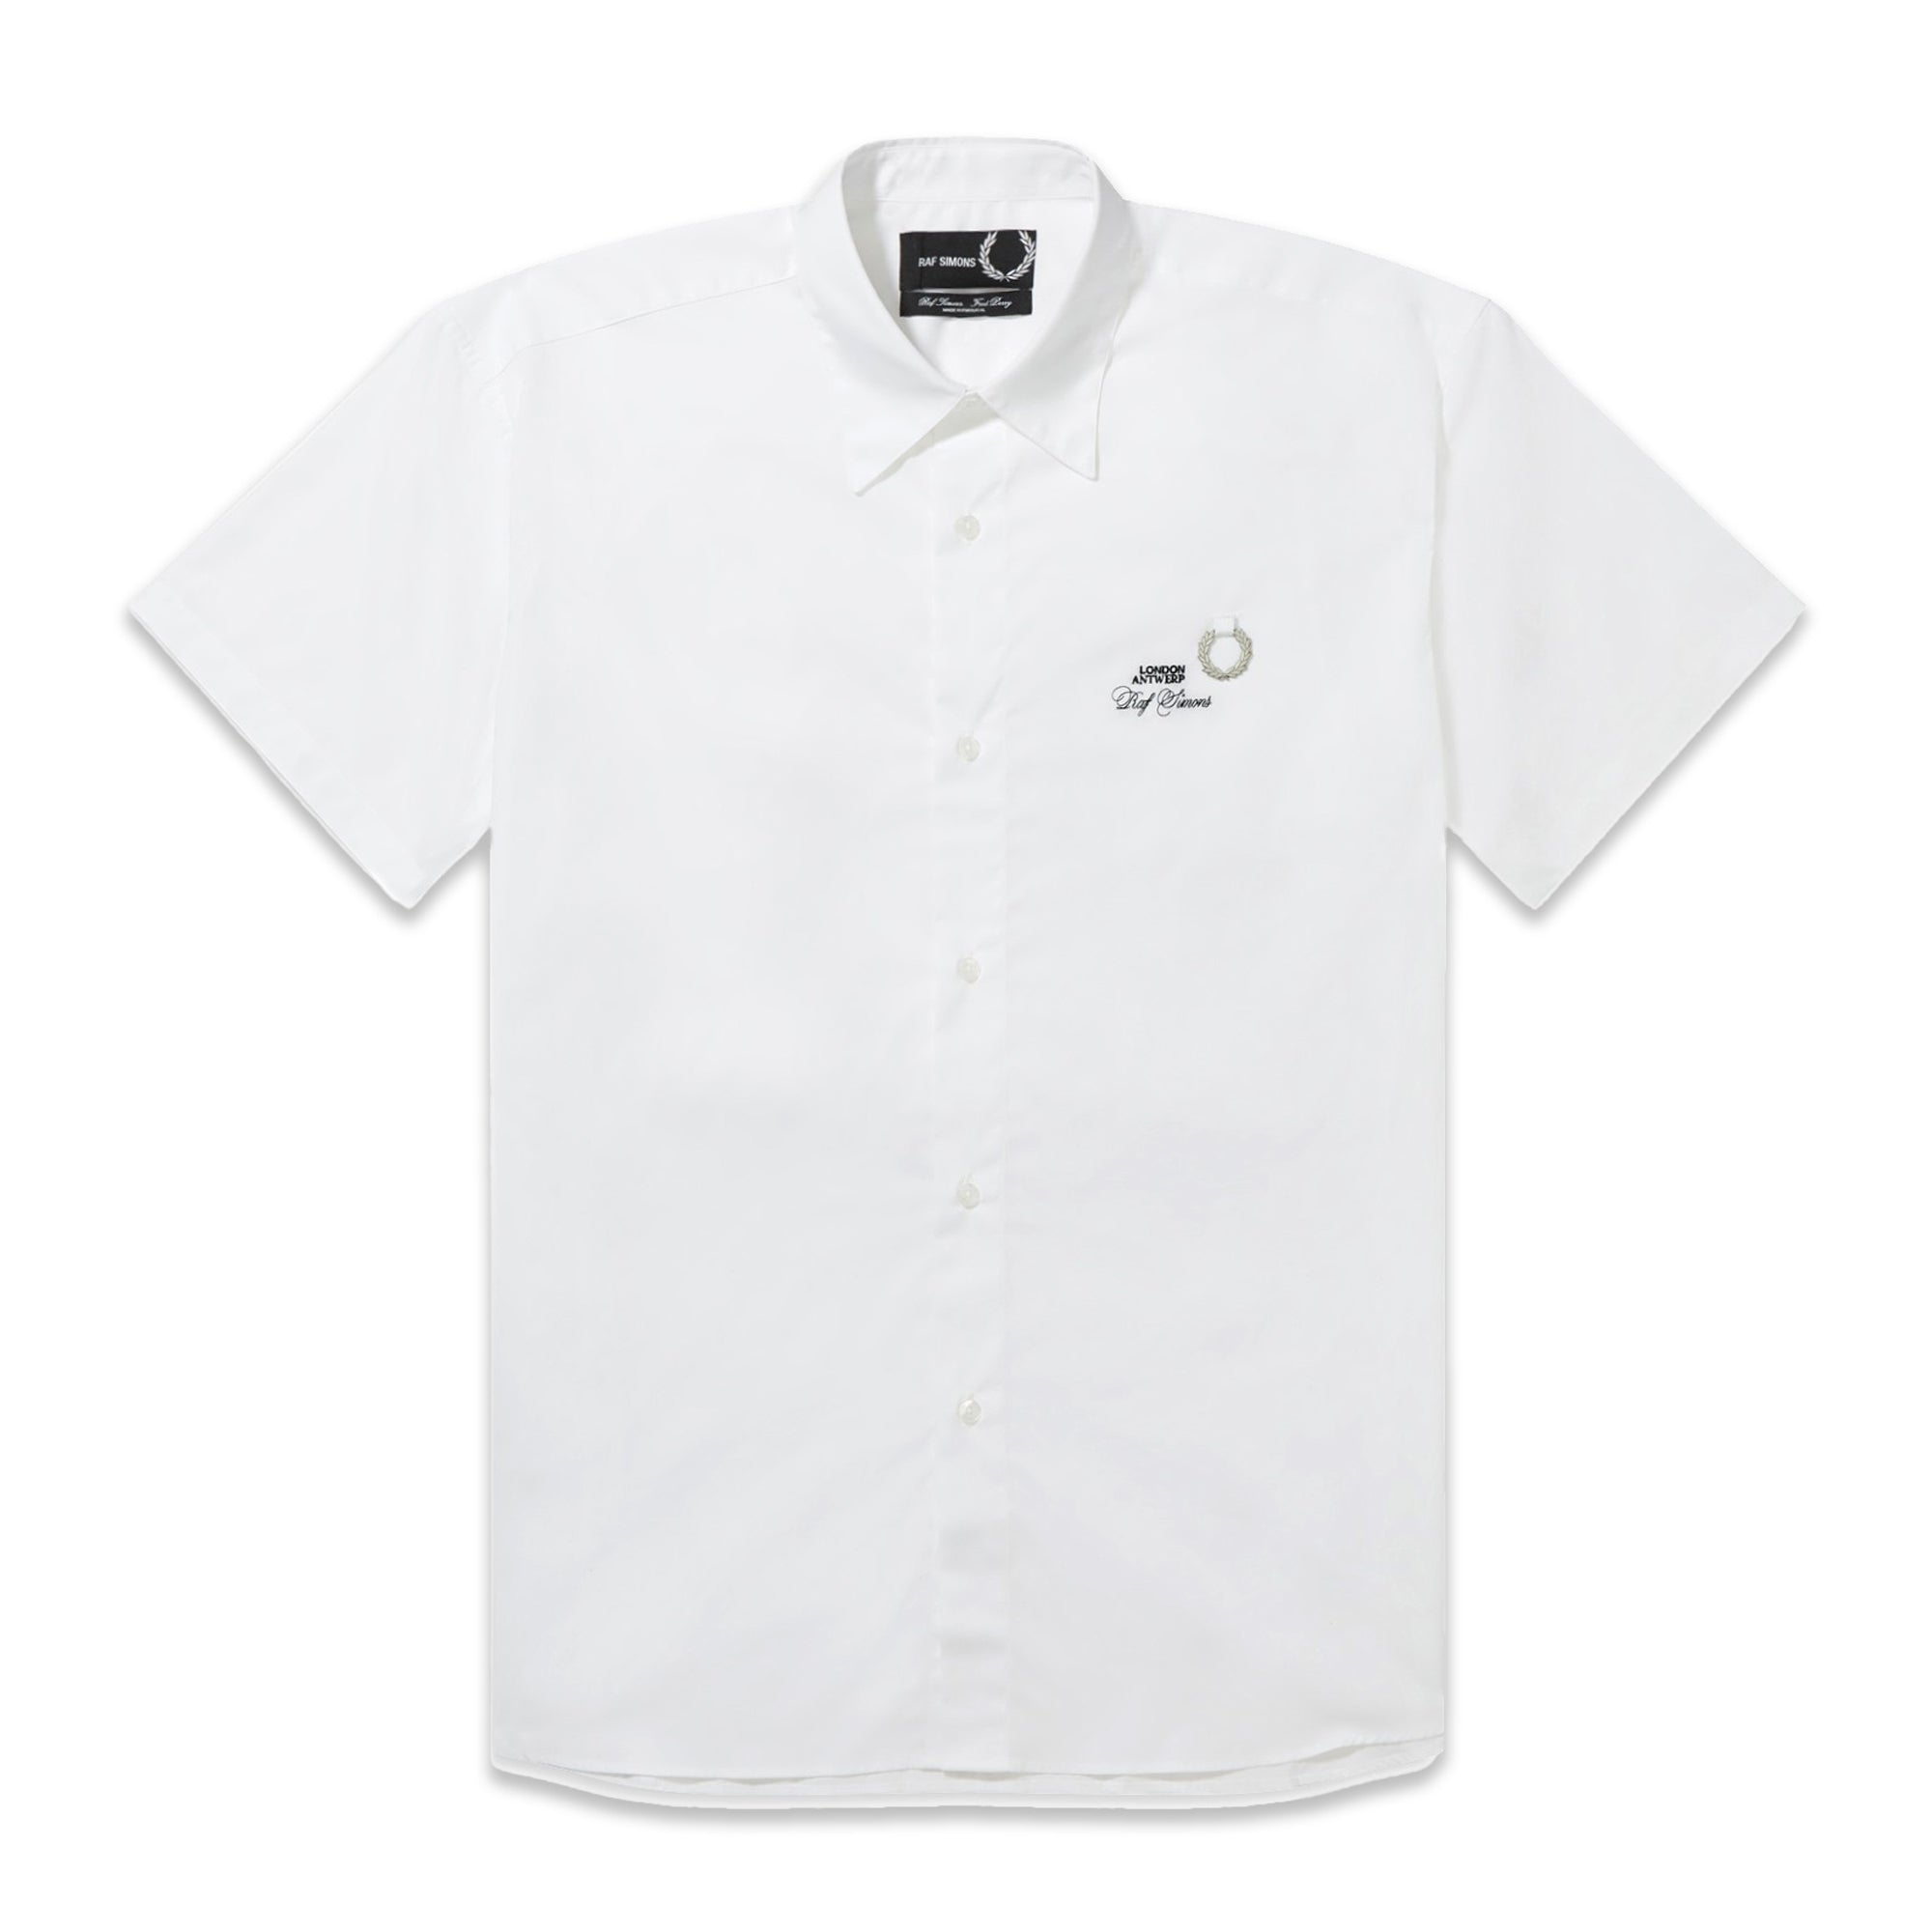 Fred Perry x Raf Simons Short Sleeve Woven Shirt White